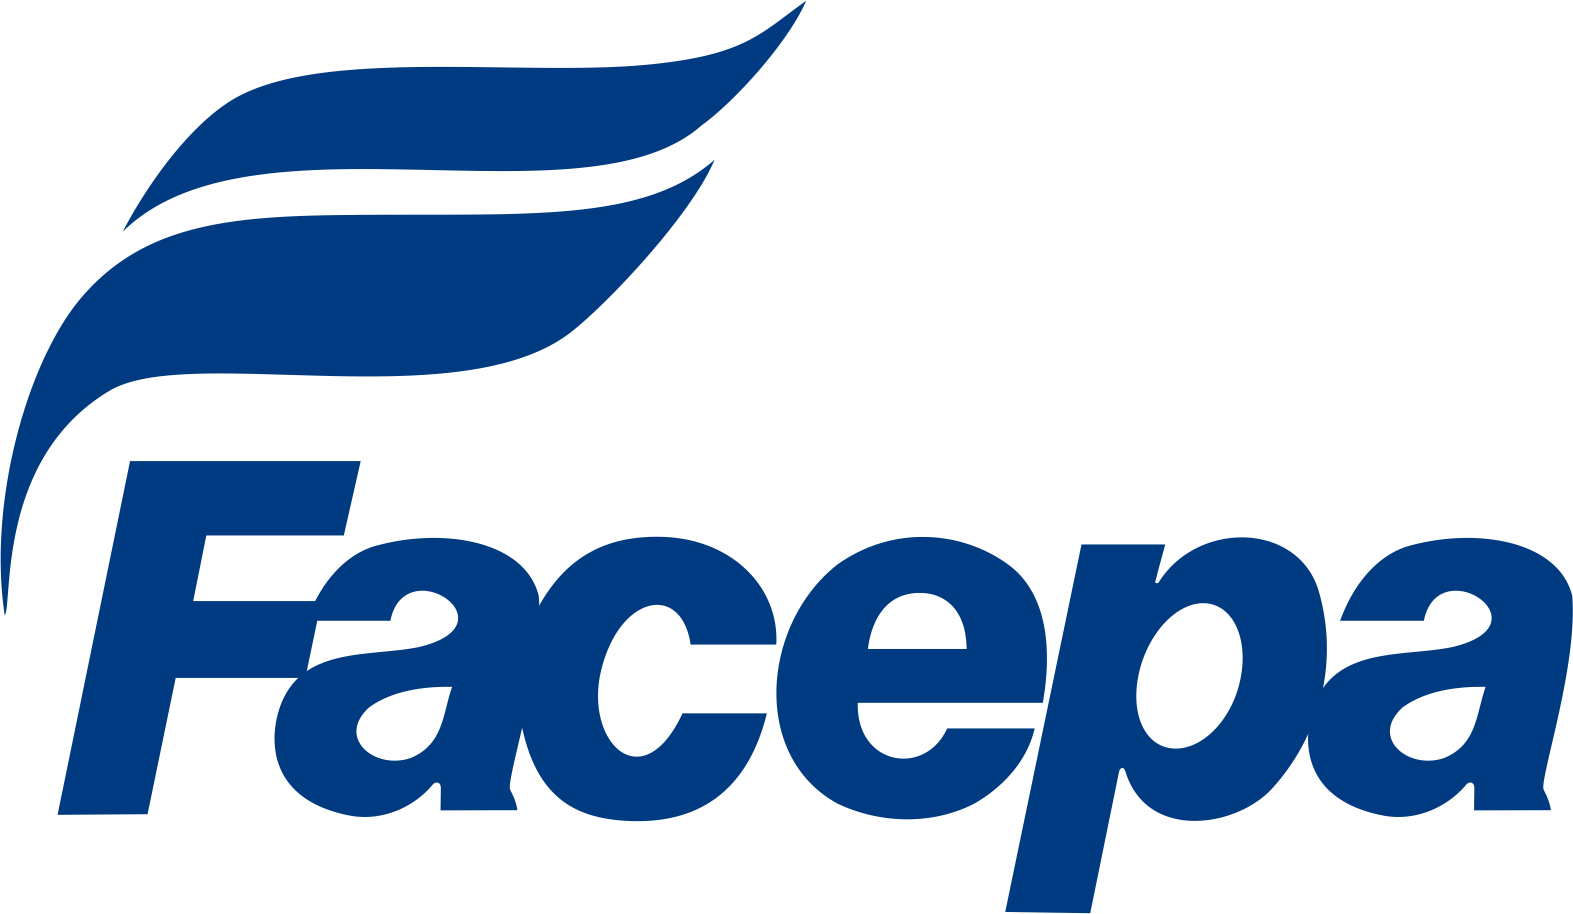 Logo FACEPA